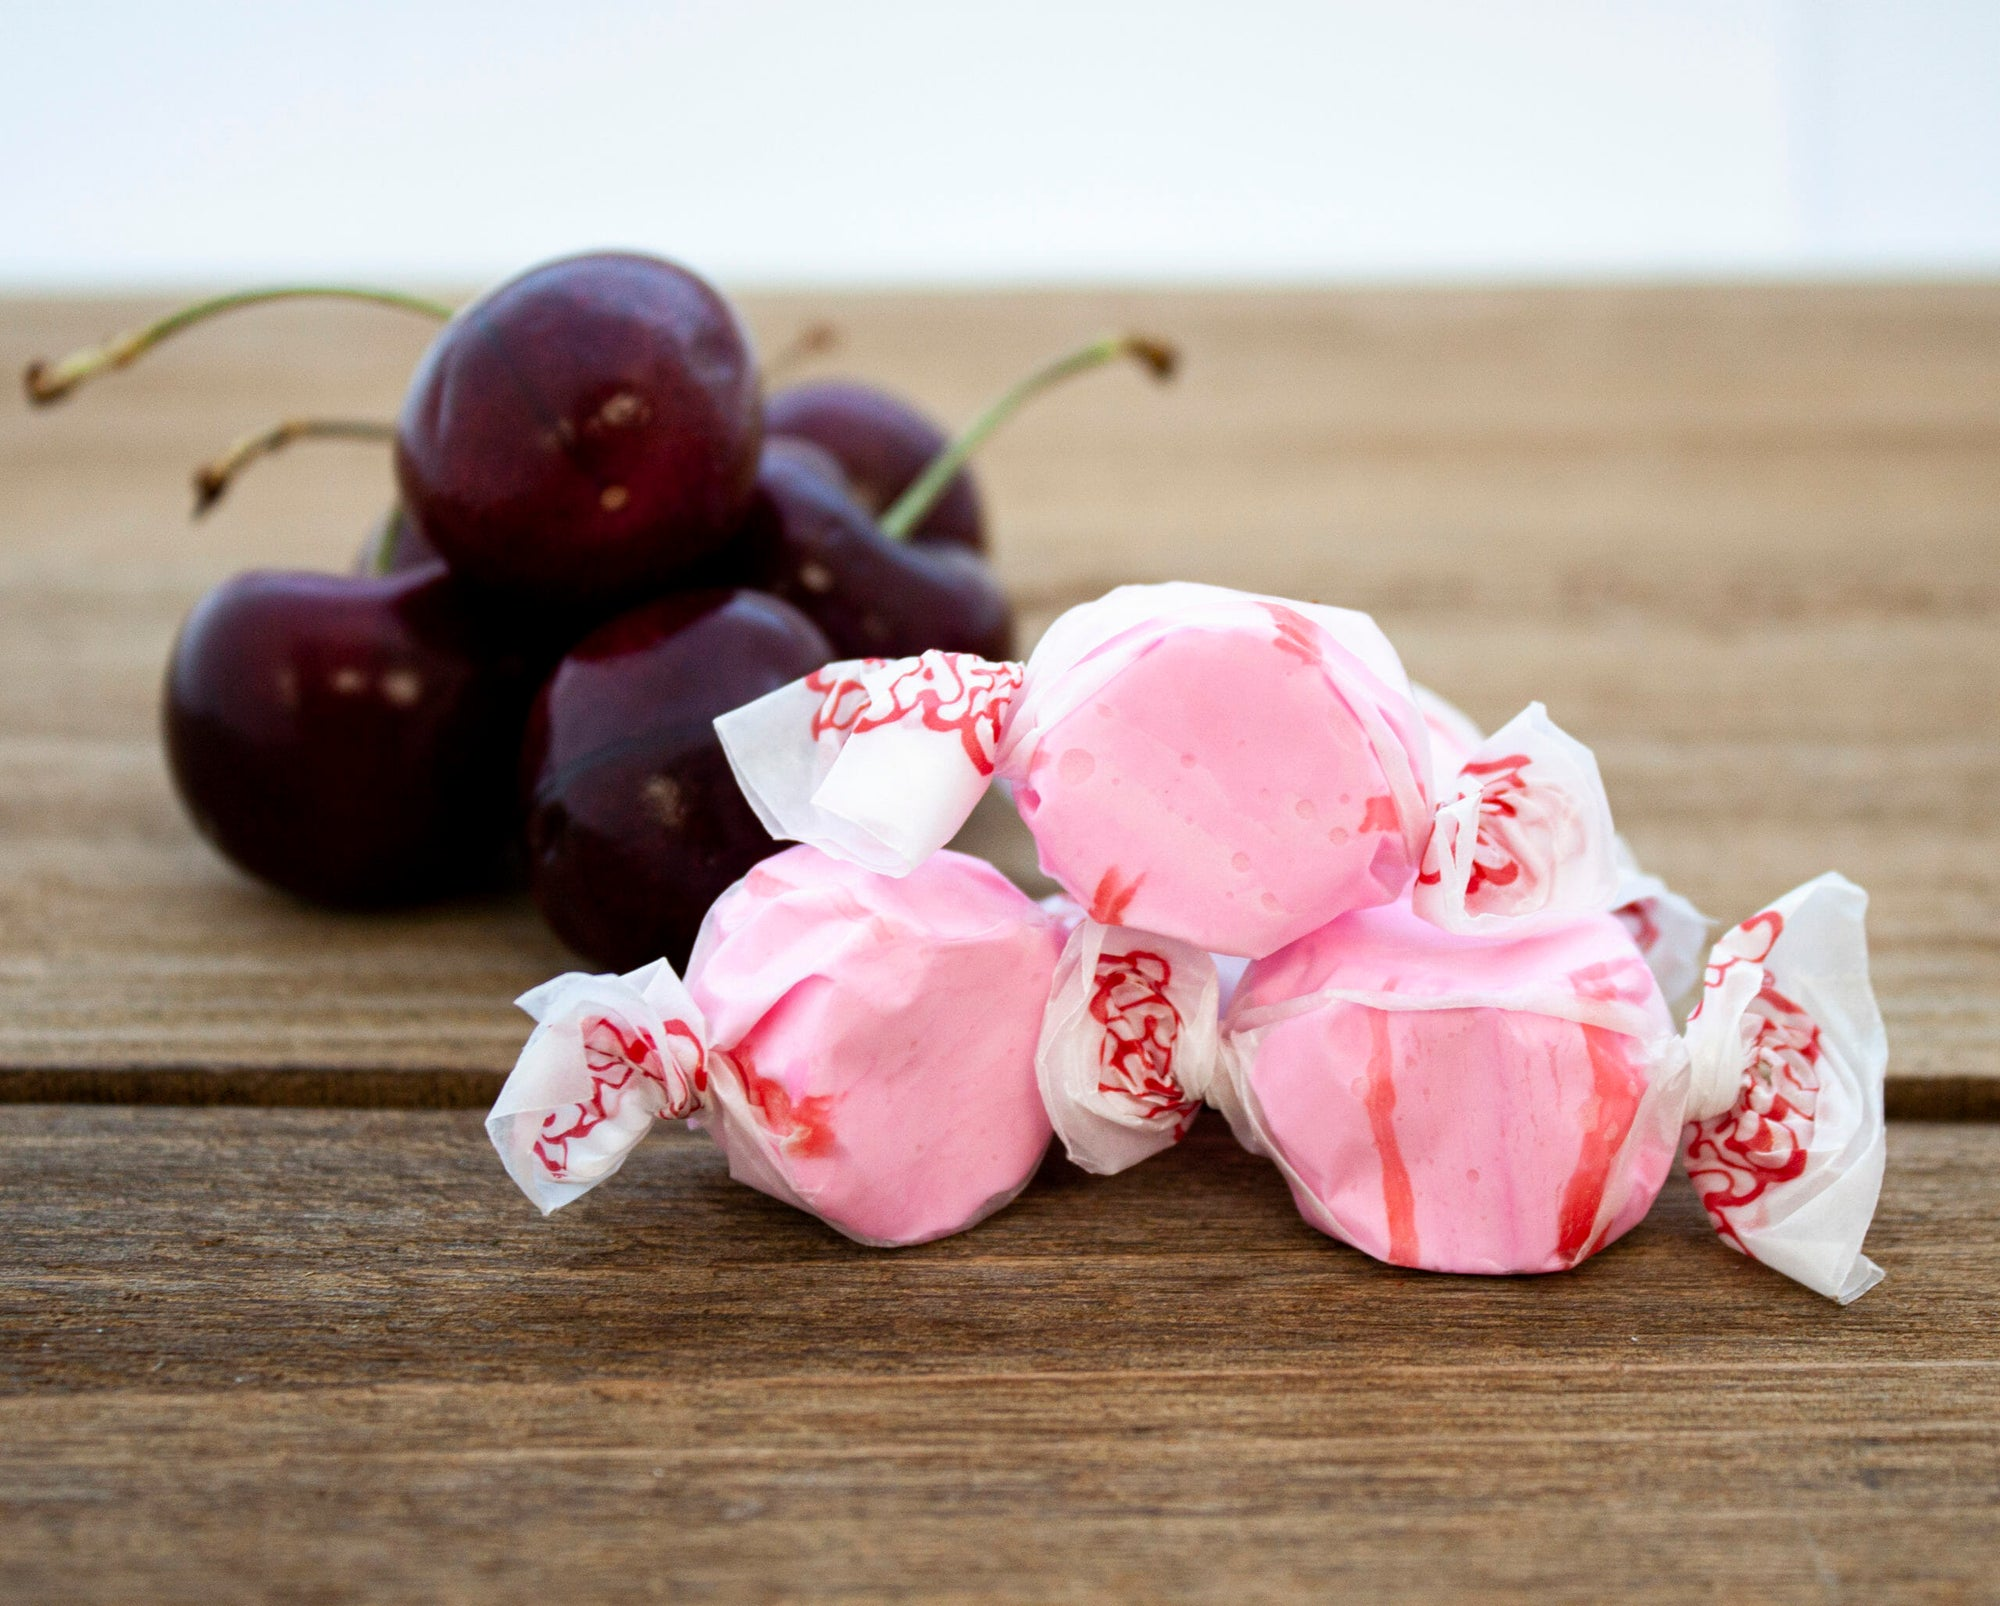 Cherry Taffy - February Flavor of the Month